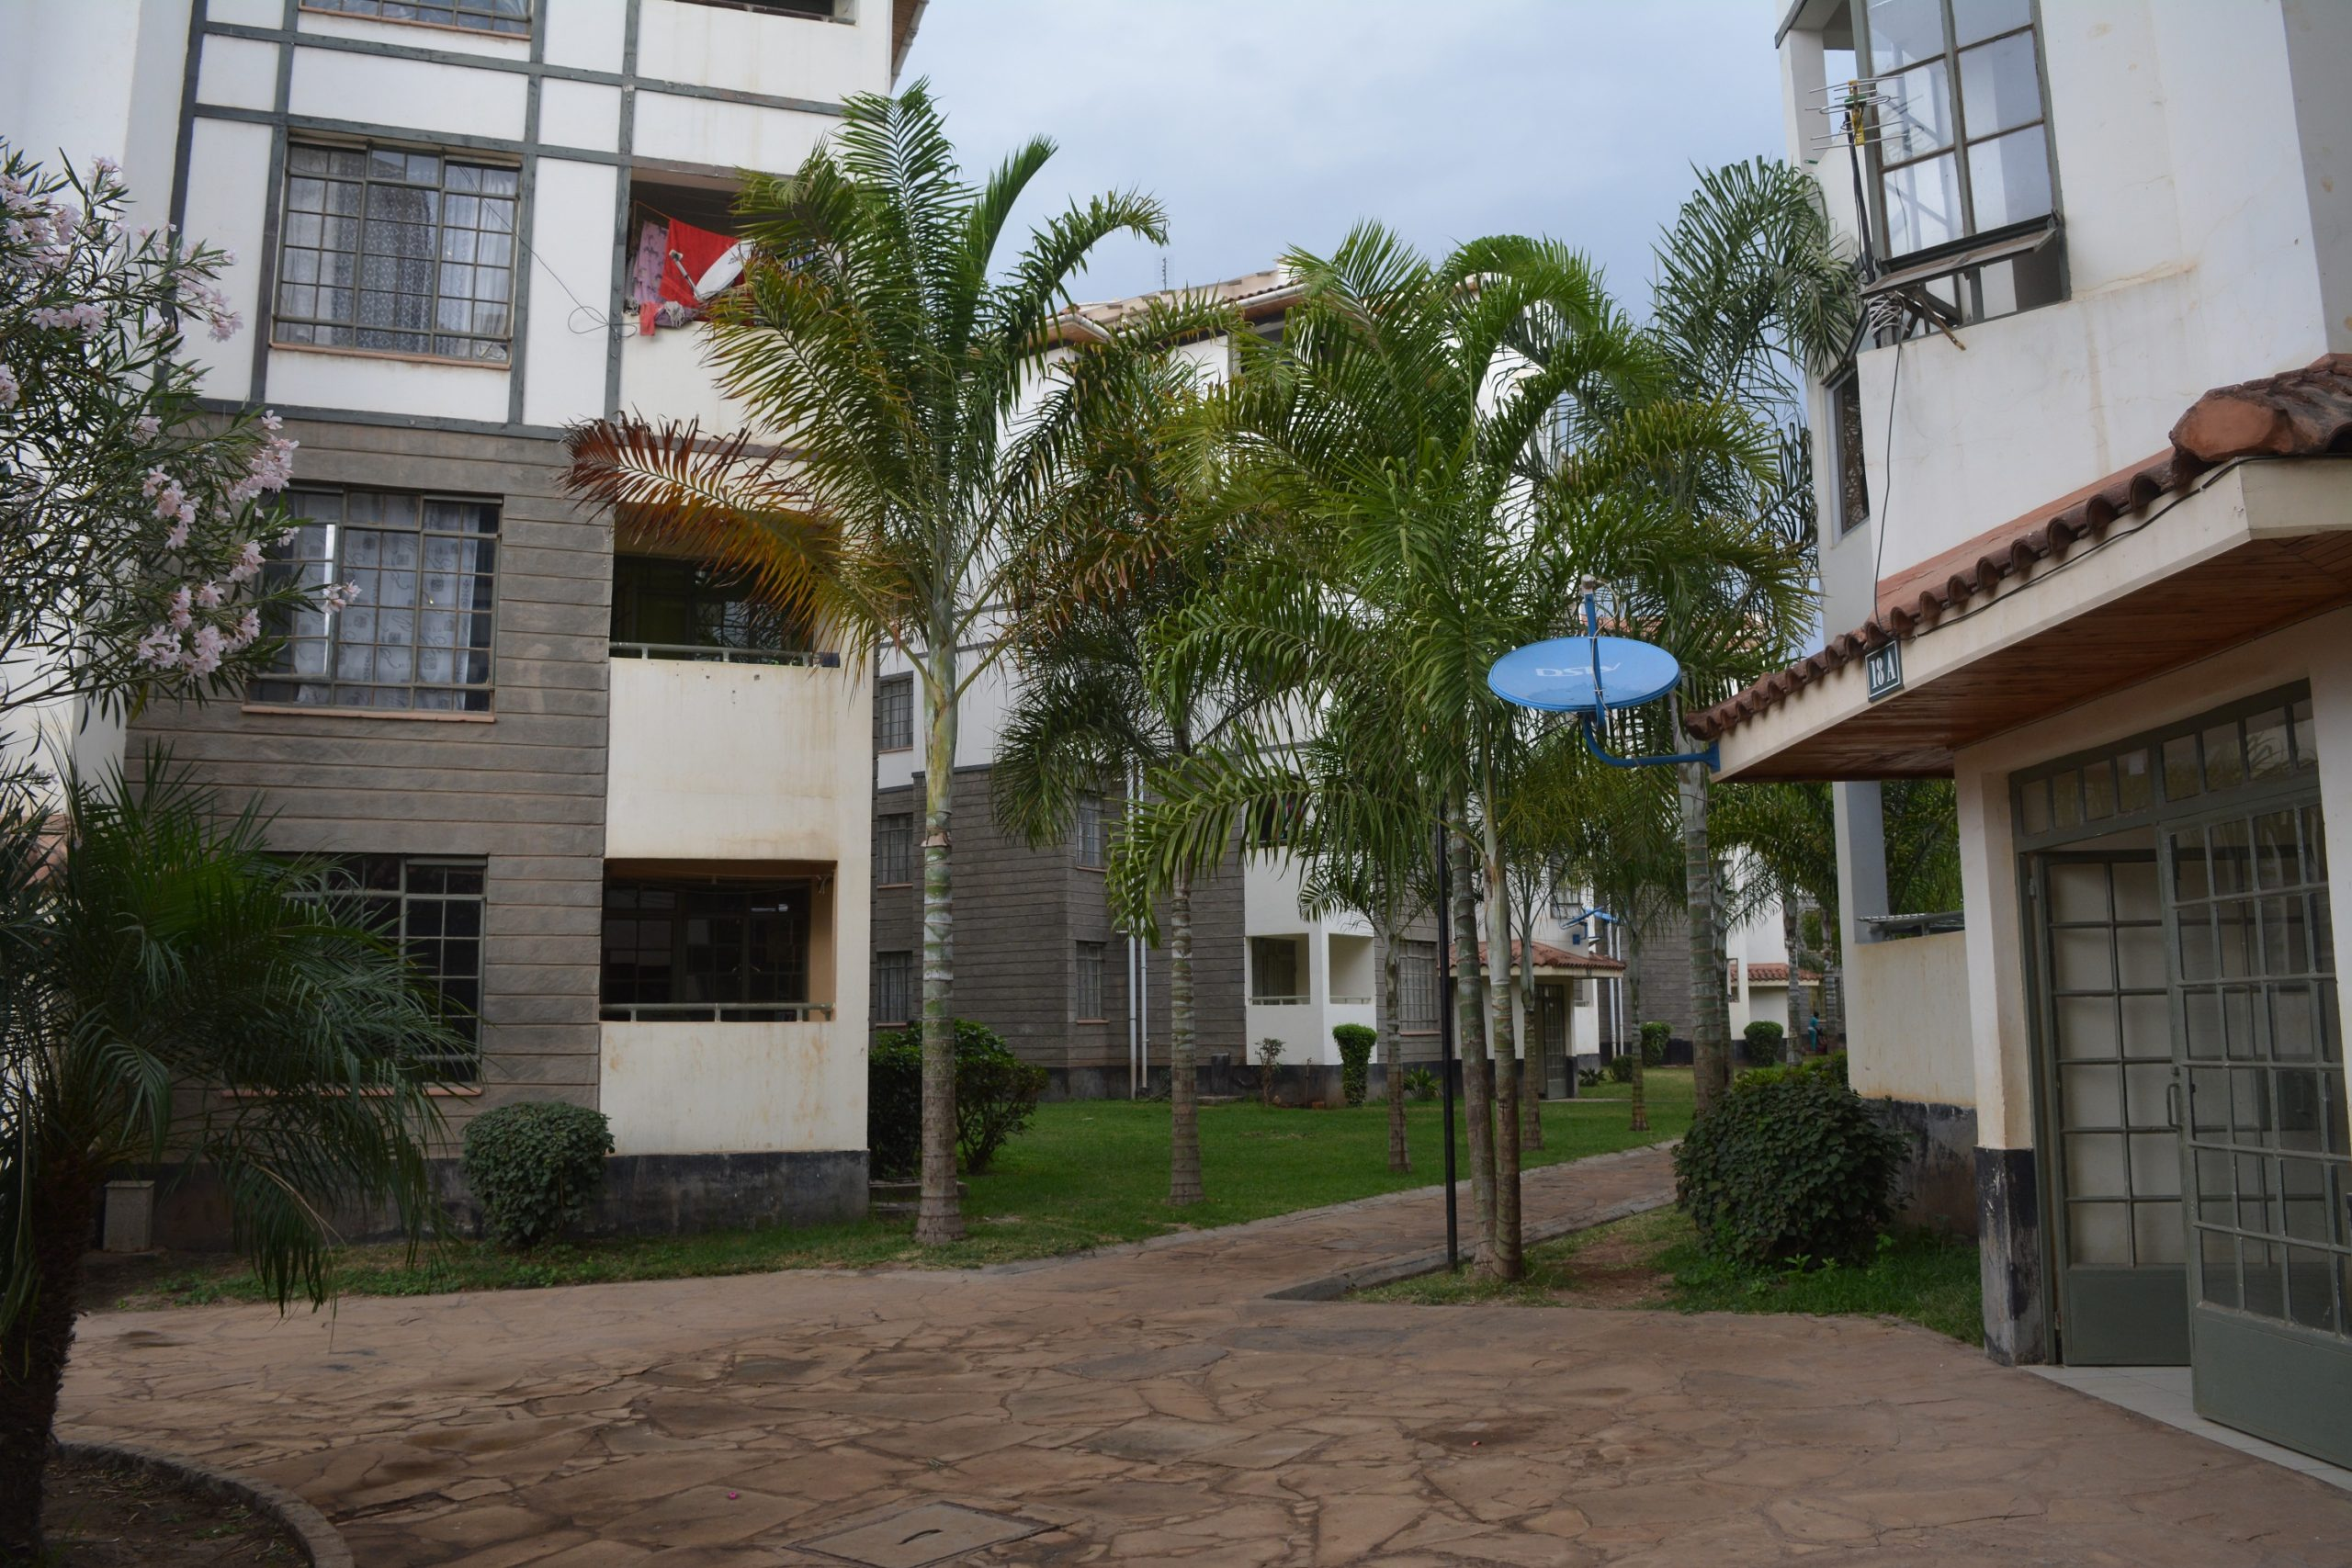 Bella Casa Apartments, Athi River – FOR SALE